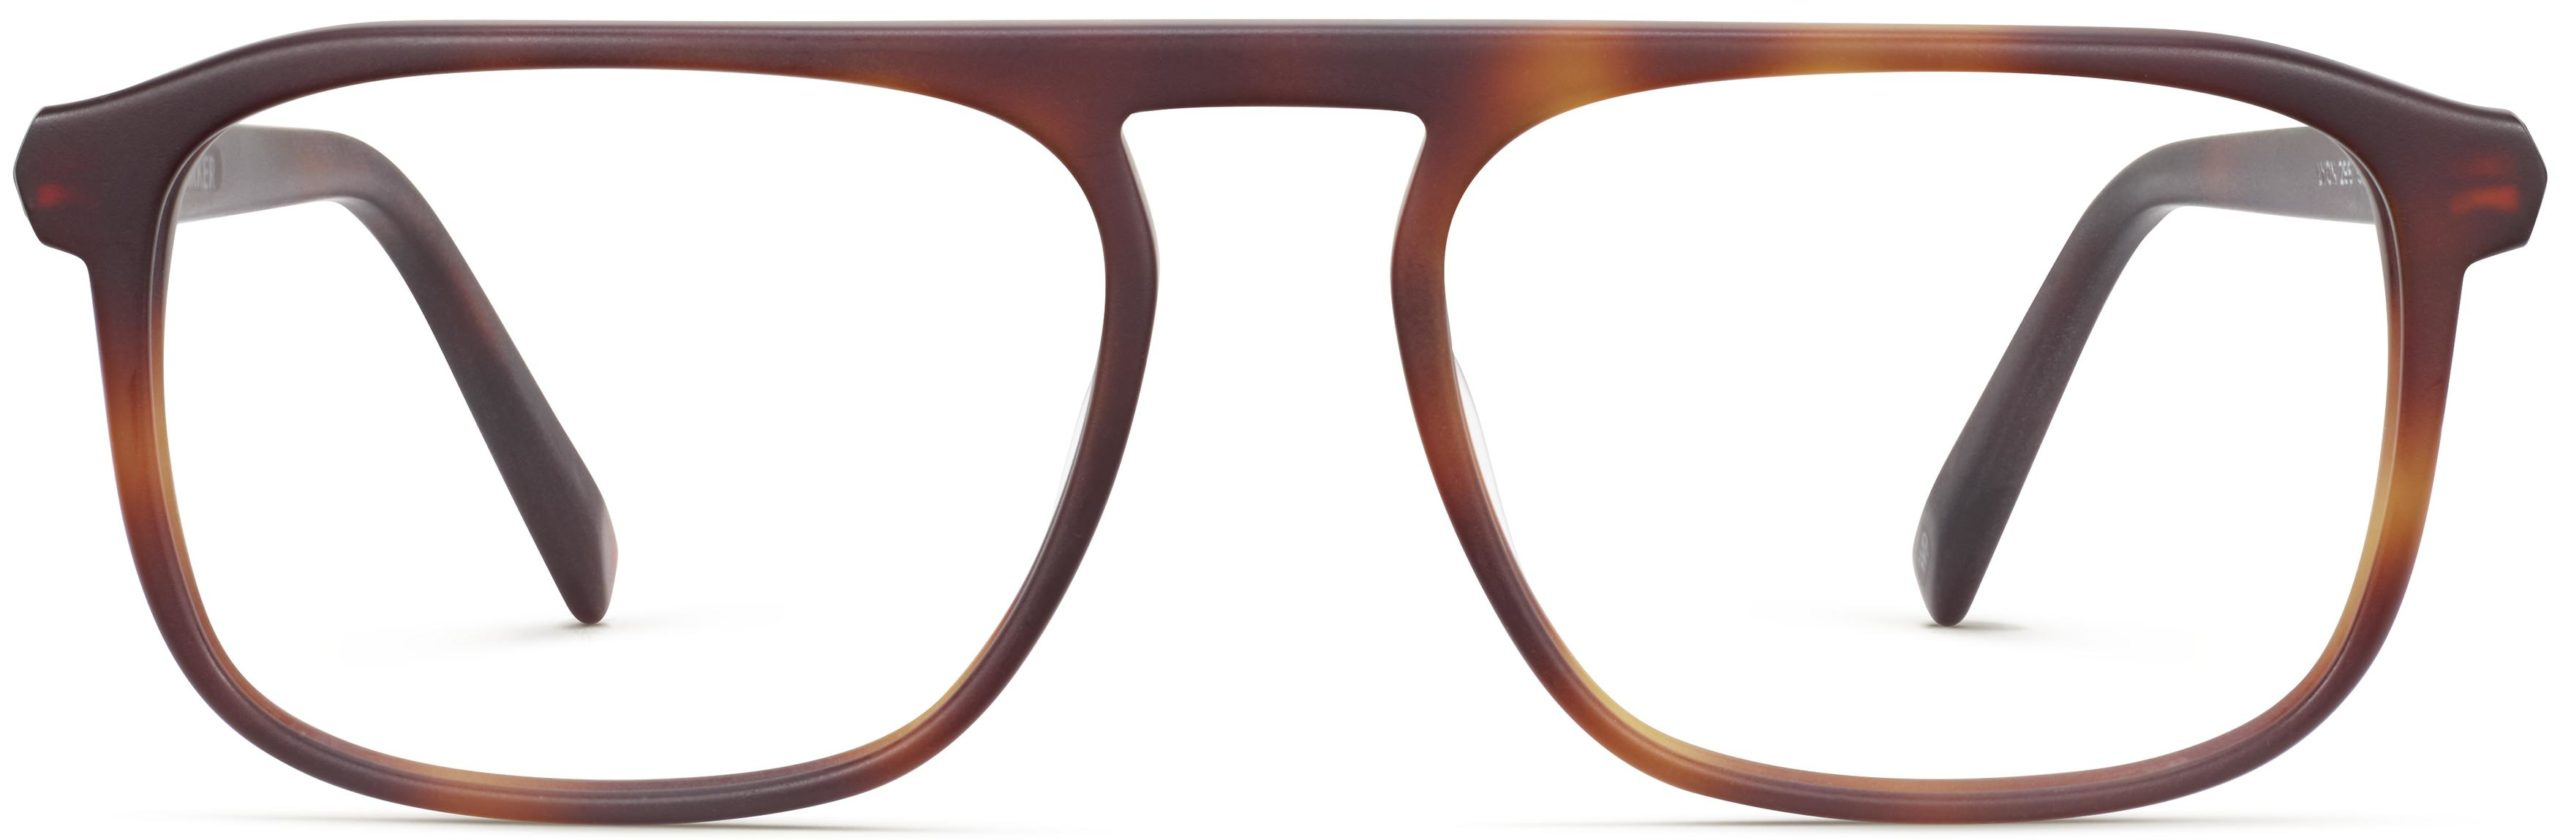 Front View Image of Lyon Eyeglasses Collection, by Warby Parker Brand, in Rye Tortoise Matte Color